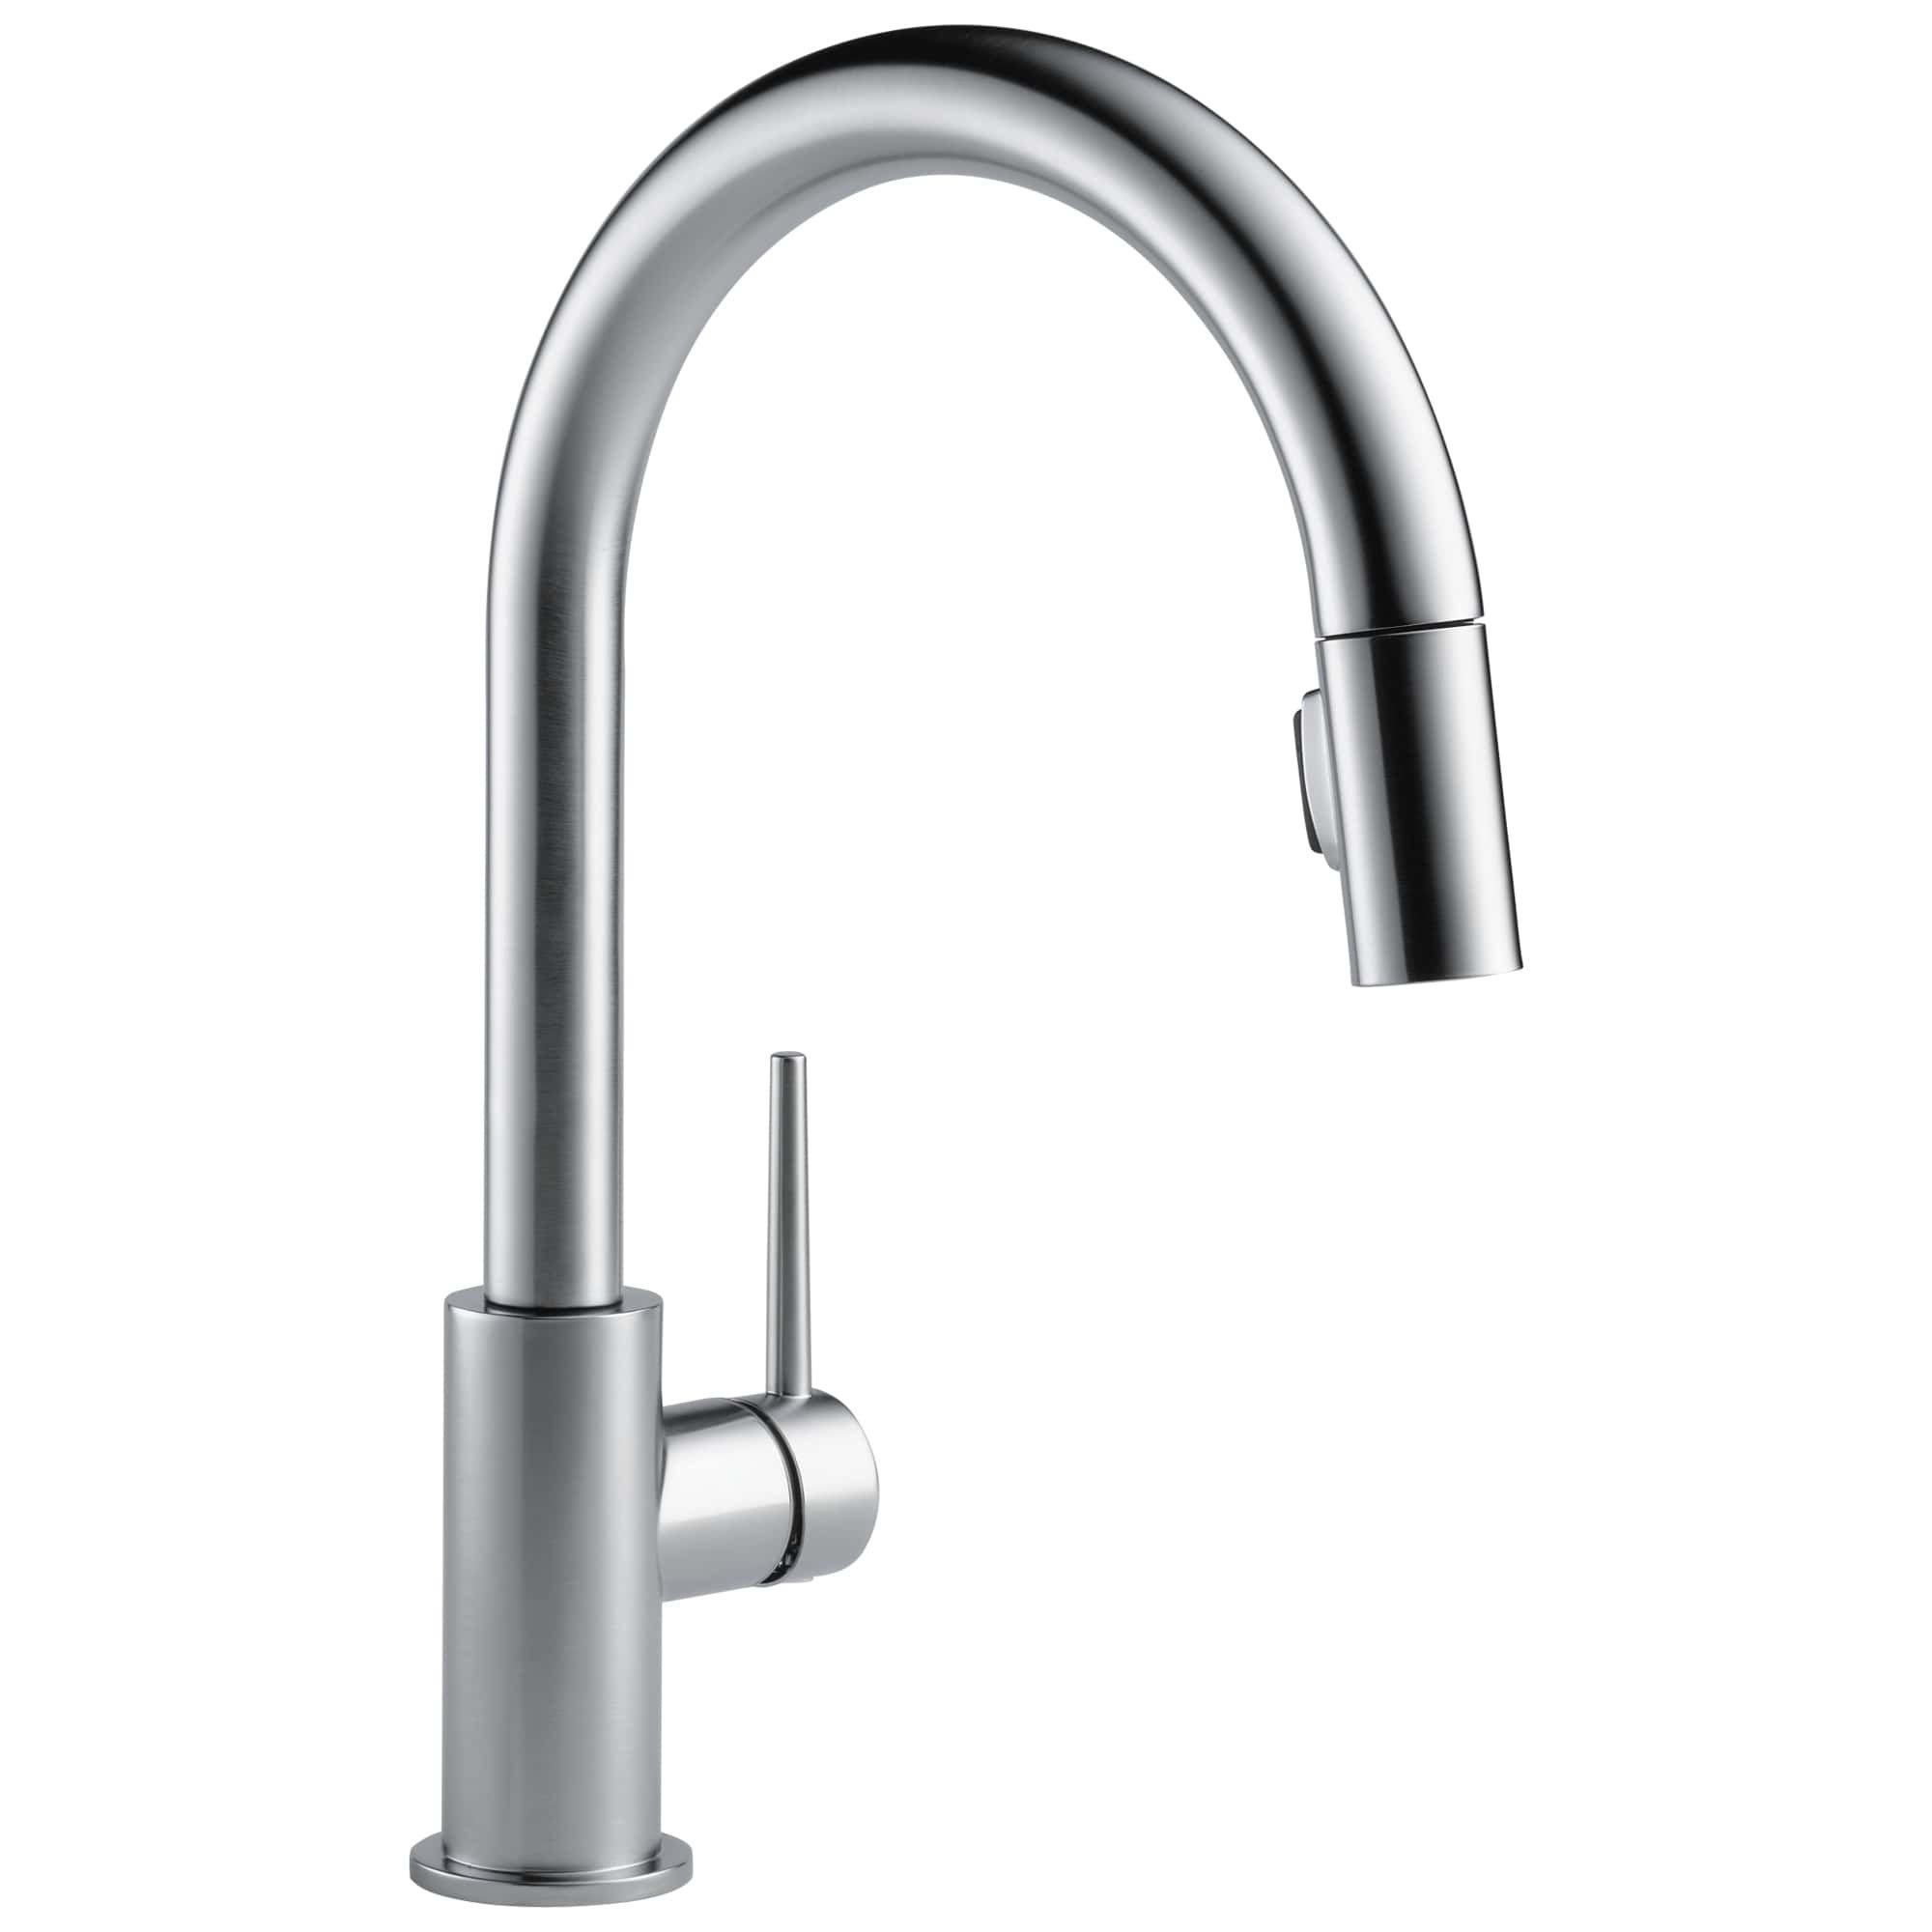 mount simple delta out spray water single antique loop down wrist filtering deck pull handle blade modern kitchen centerset pewter rinse divine faucet pre trinsic